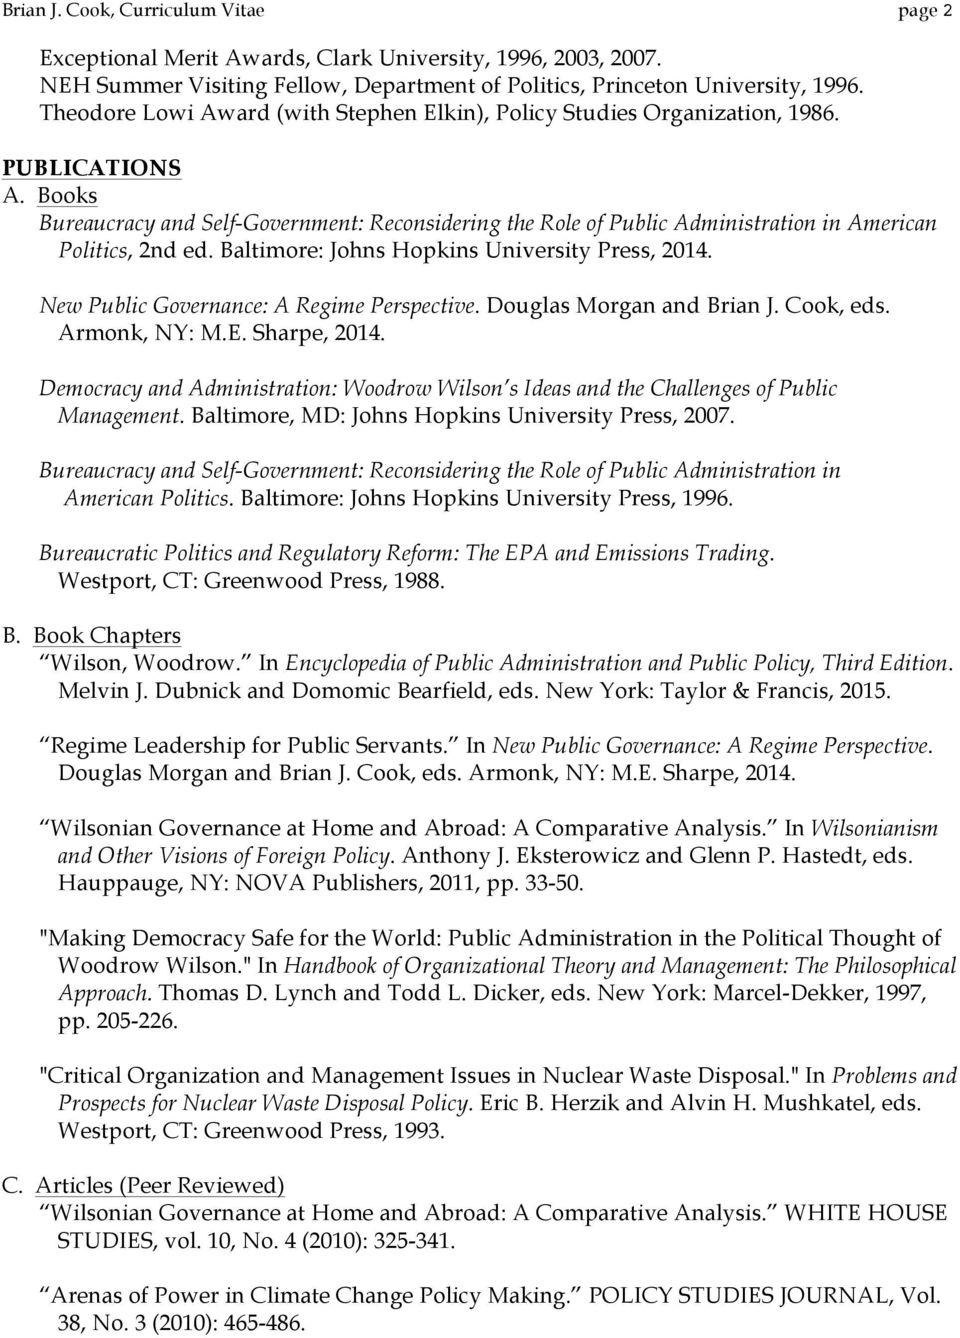 Books Bureaucracy and Self-Government: Reconsidering the Role of Public Administration in American Politics, 2nd ed. Baltimore: Johns Hopkins University Press, 2014.